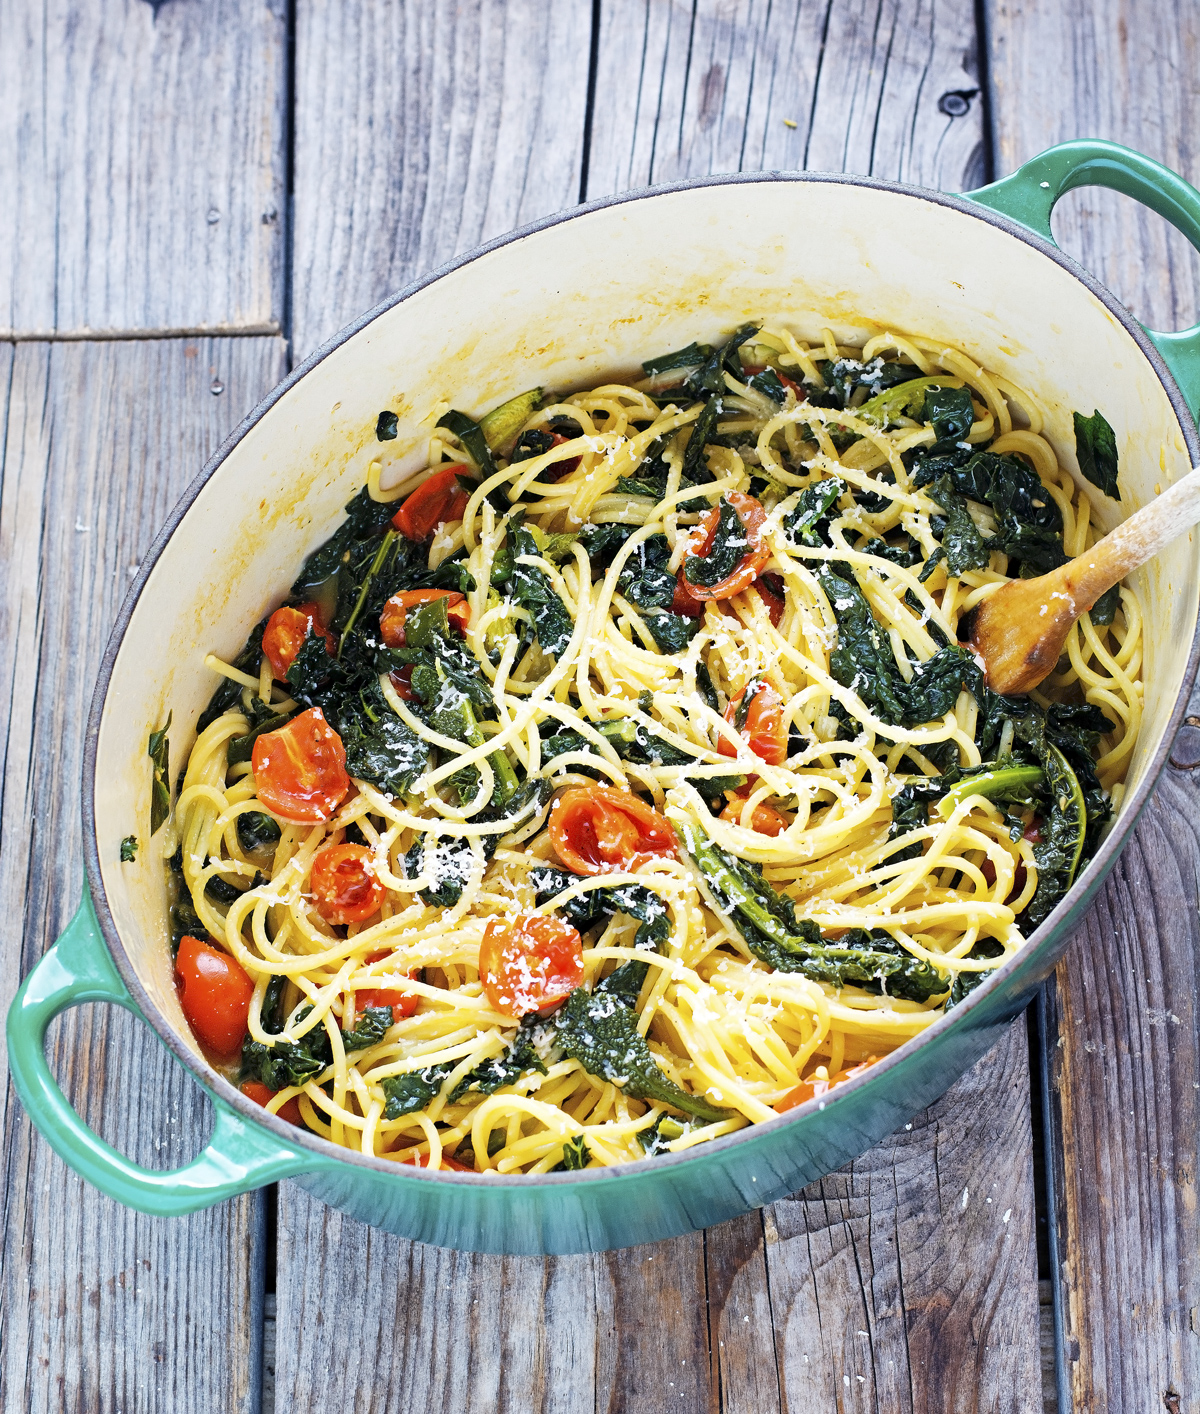 One-Pot Spaghetti with Kale and Cherry Tomatoes